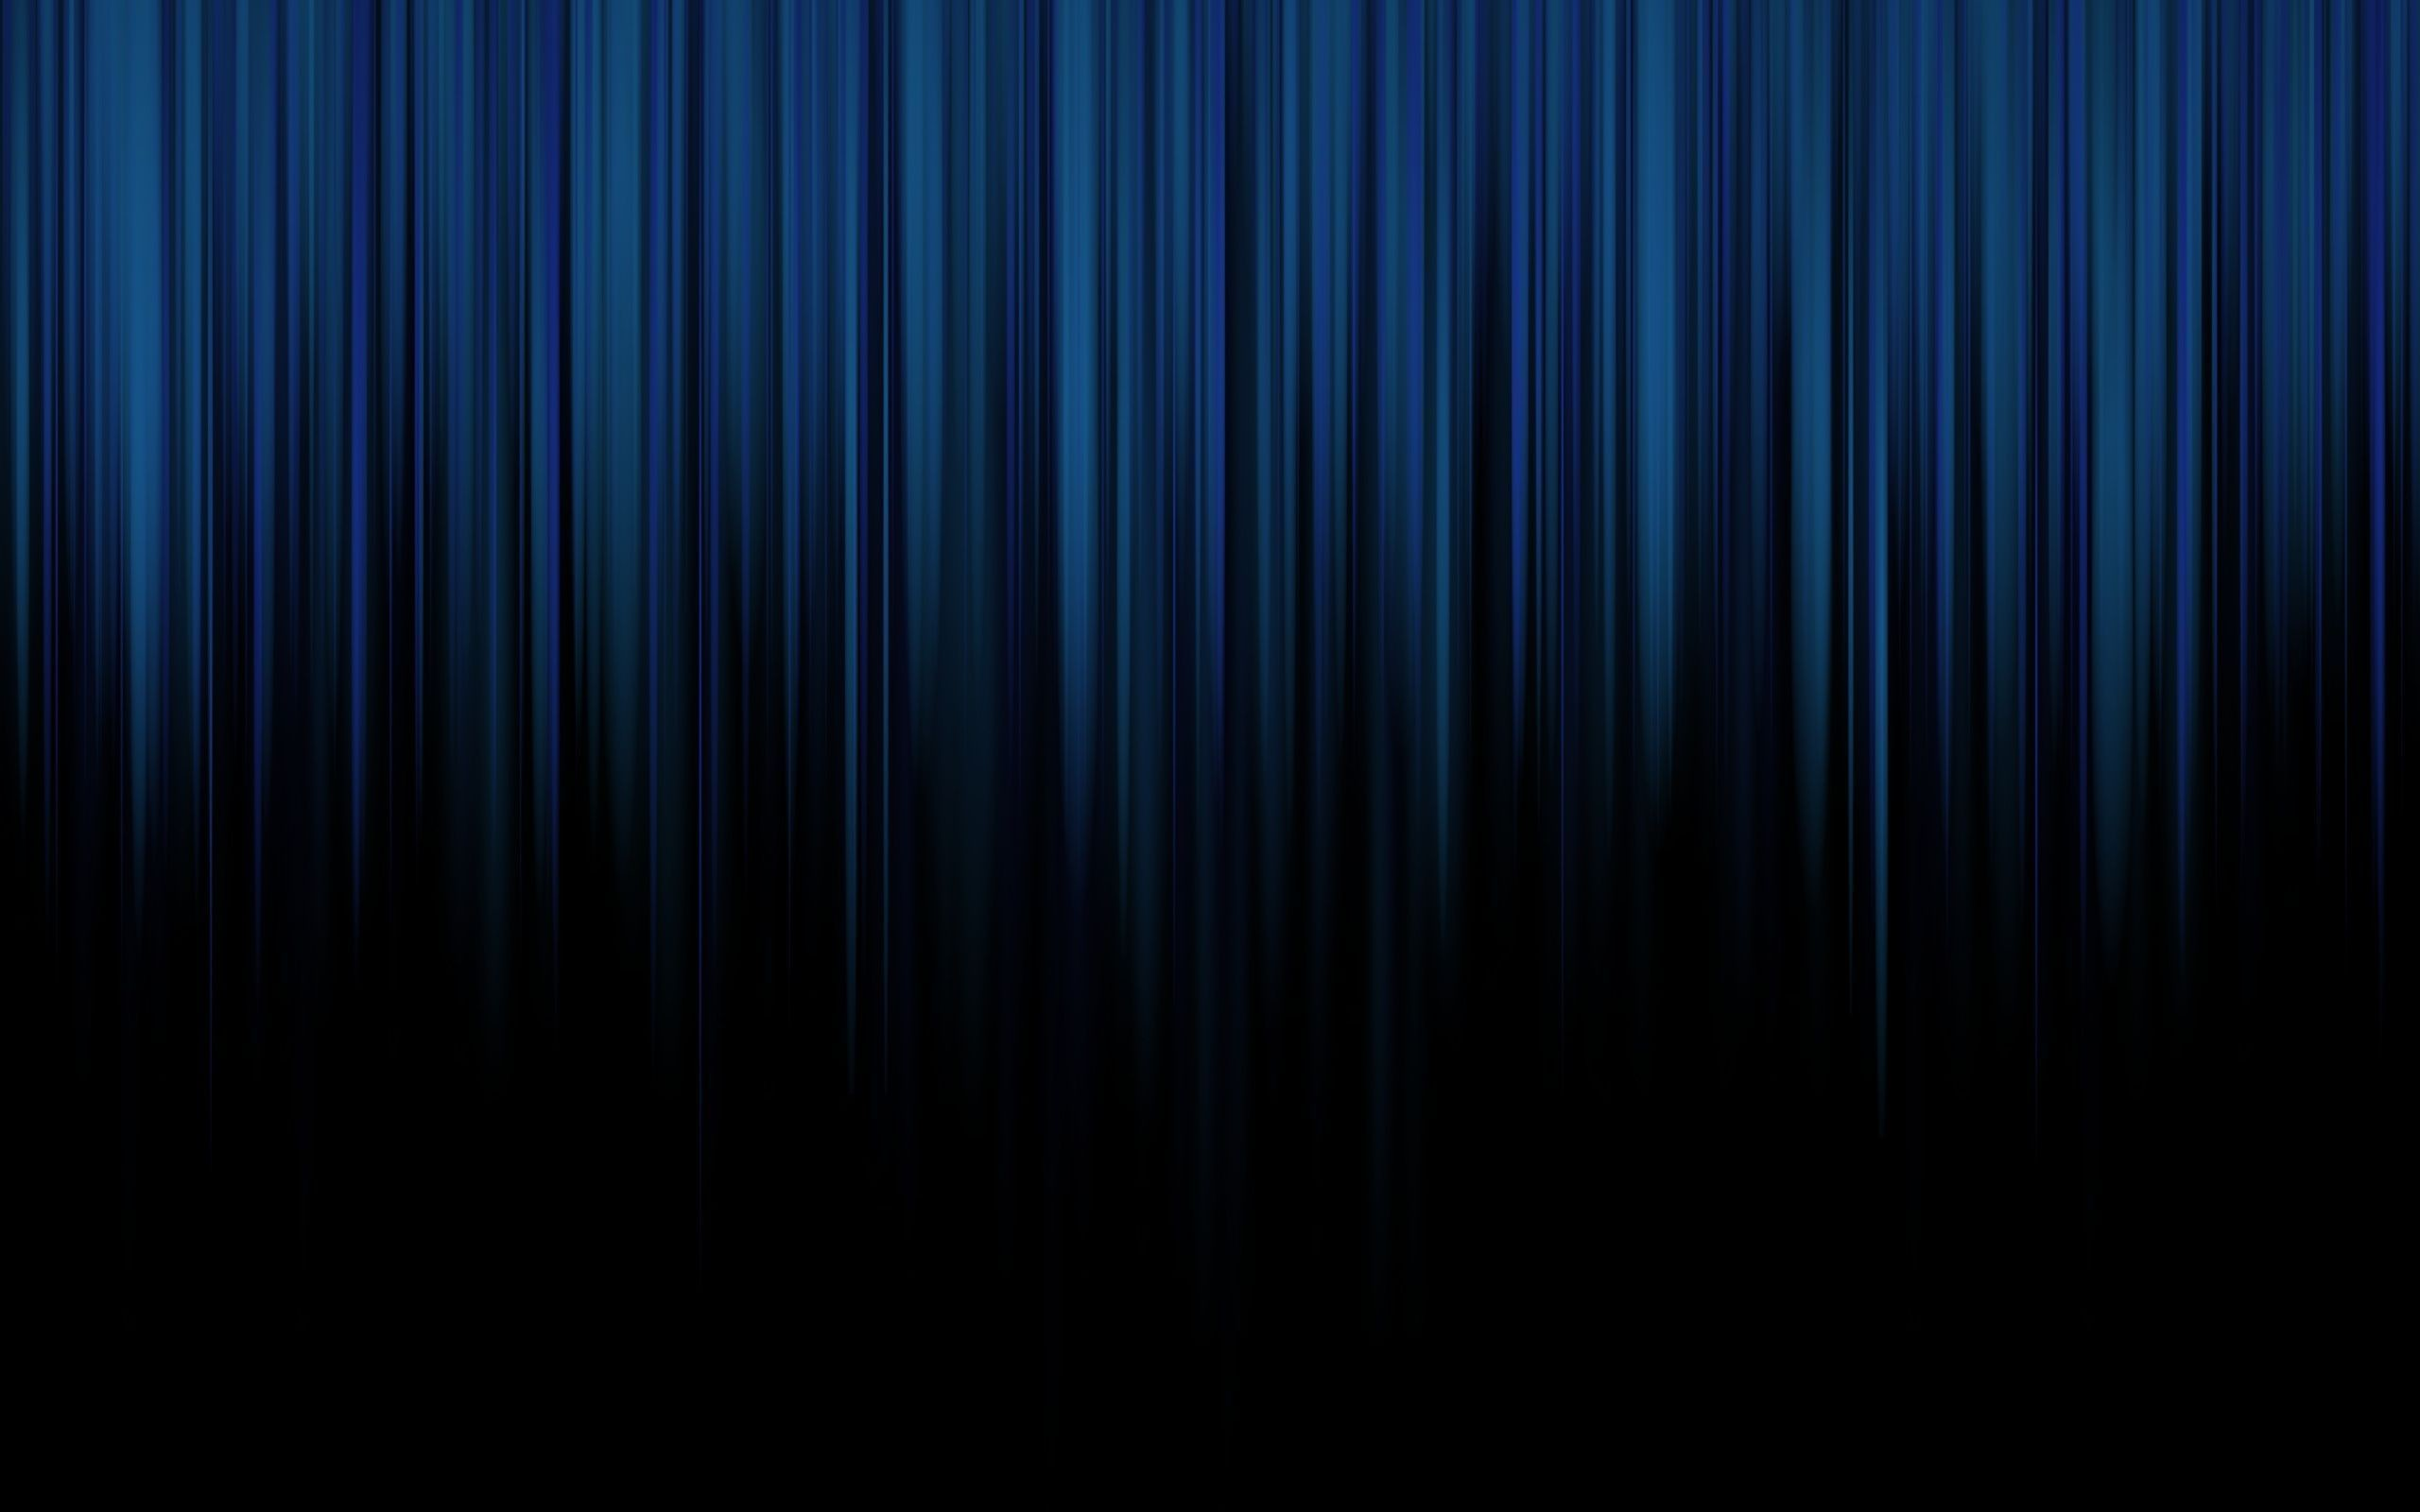 Blue Stripes Wallpaper – All Wallpapers New